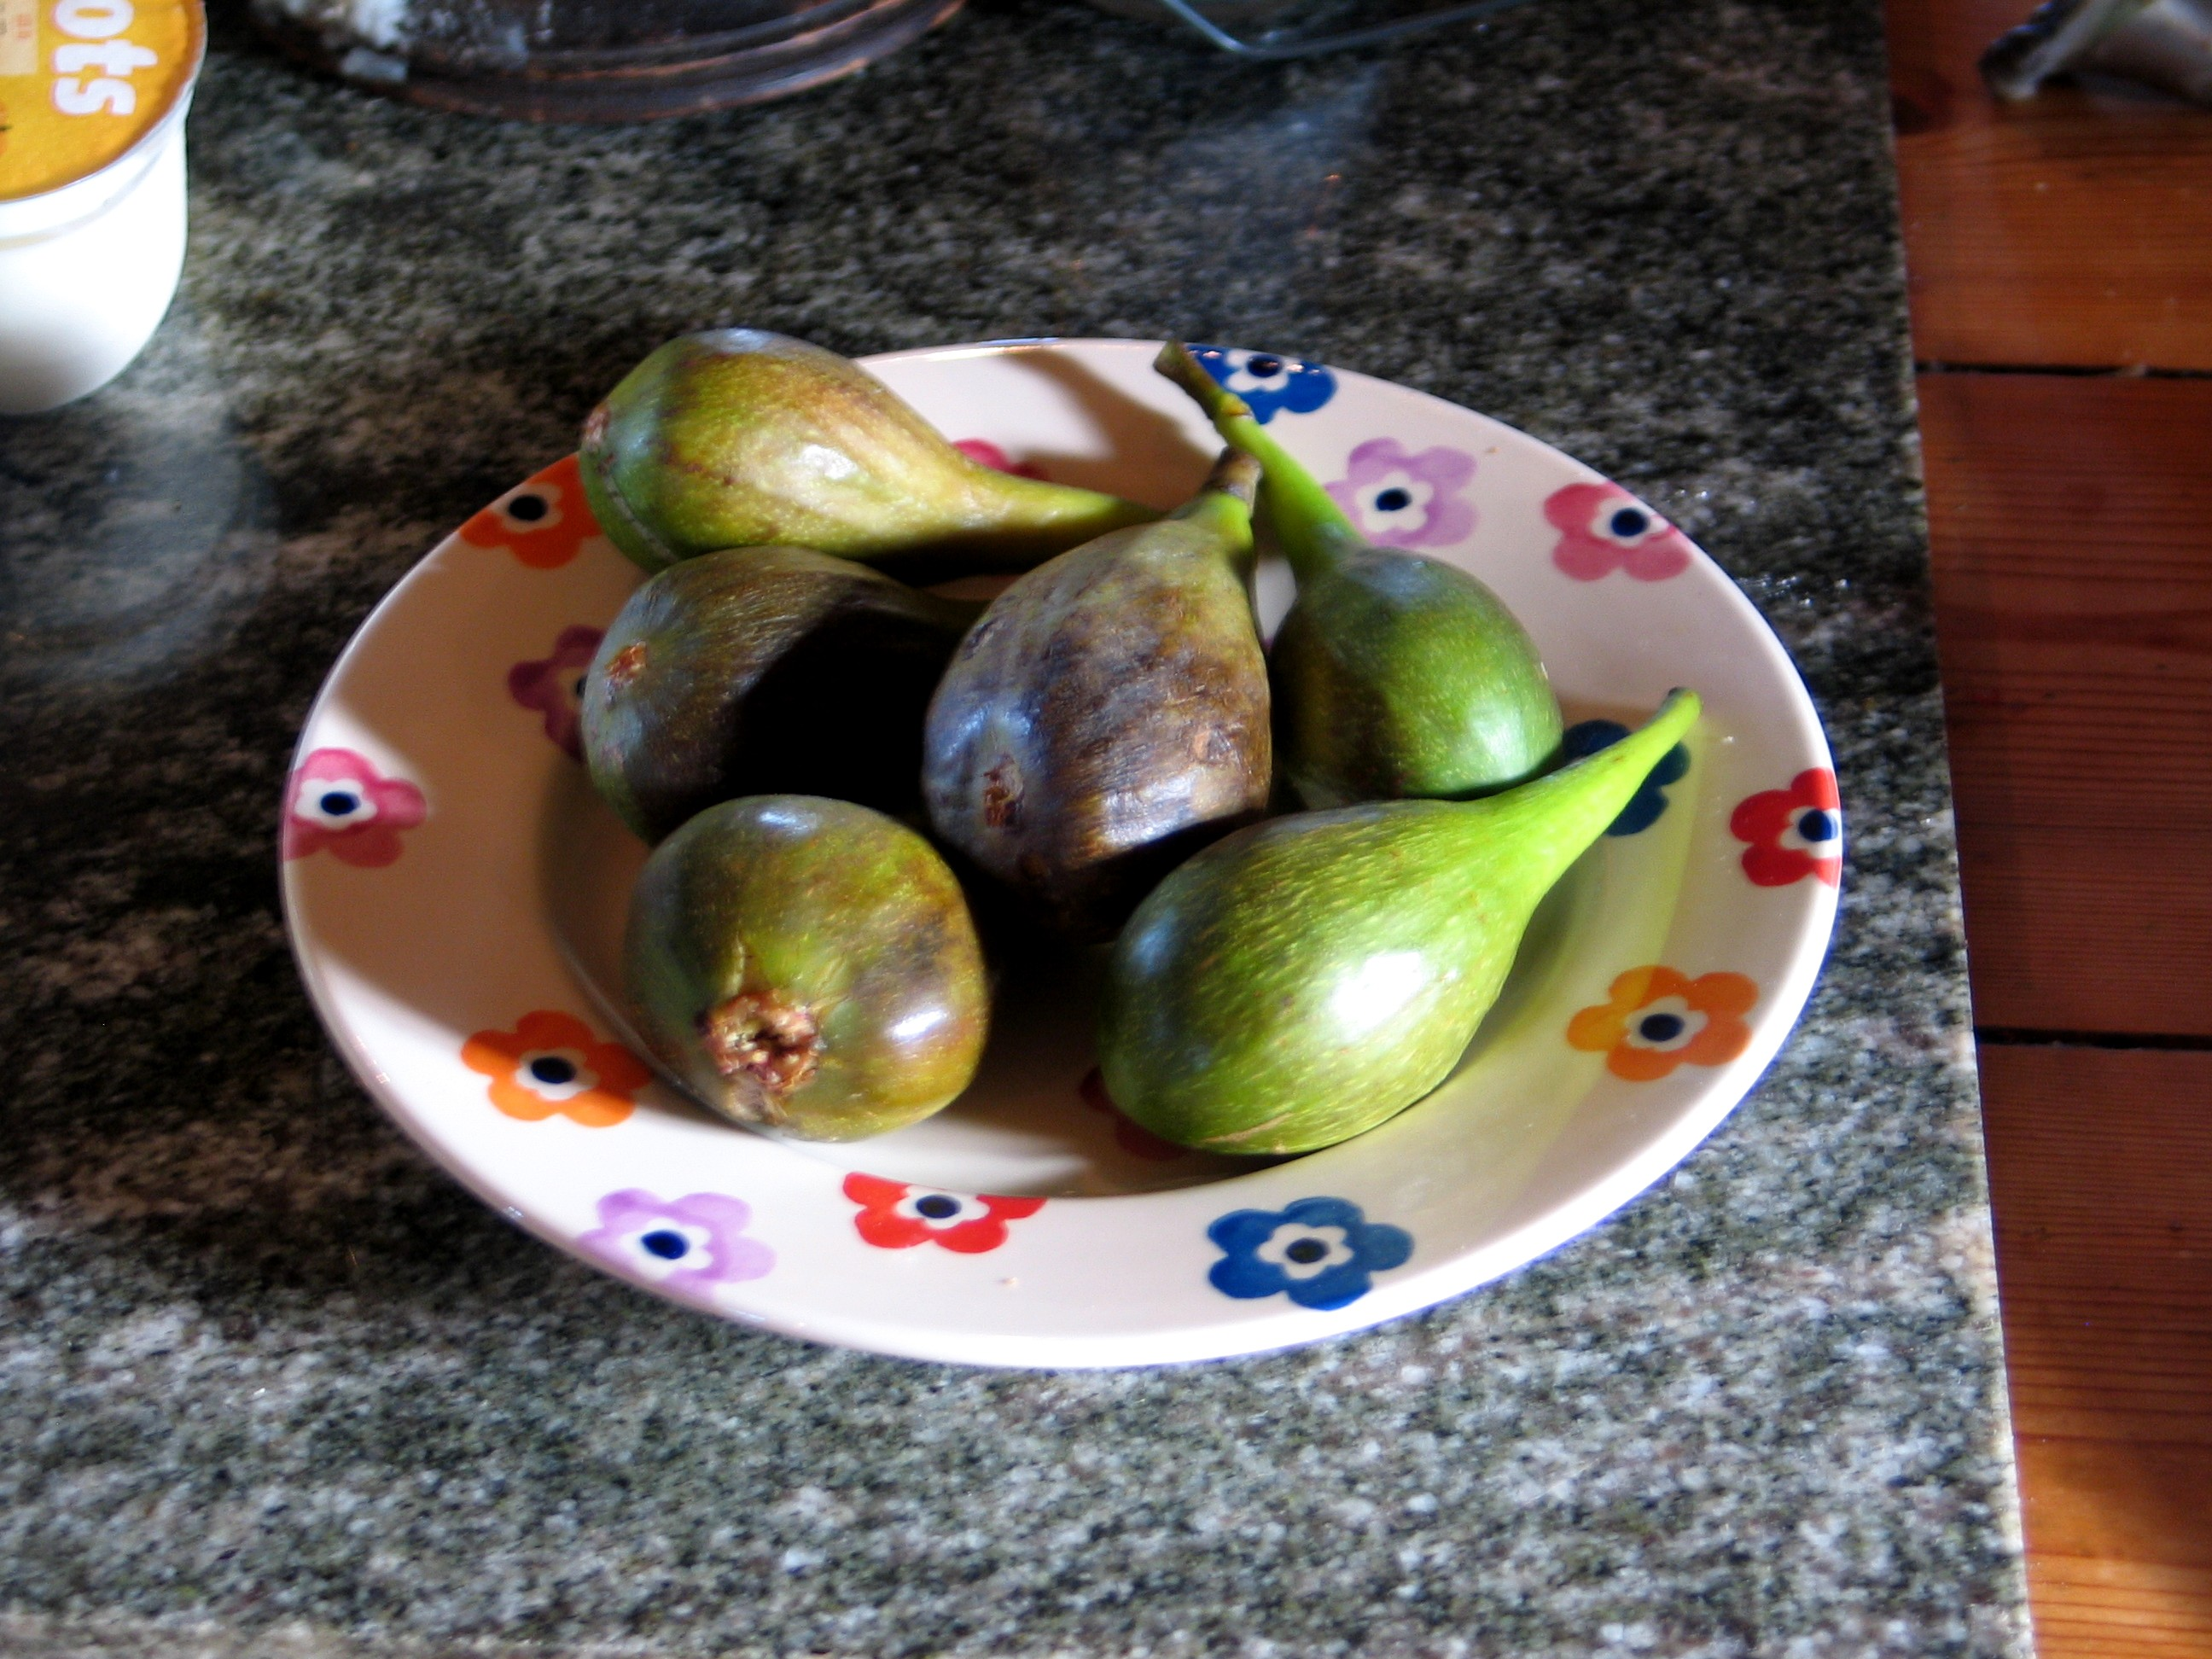 Figs freshly picked